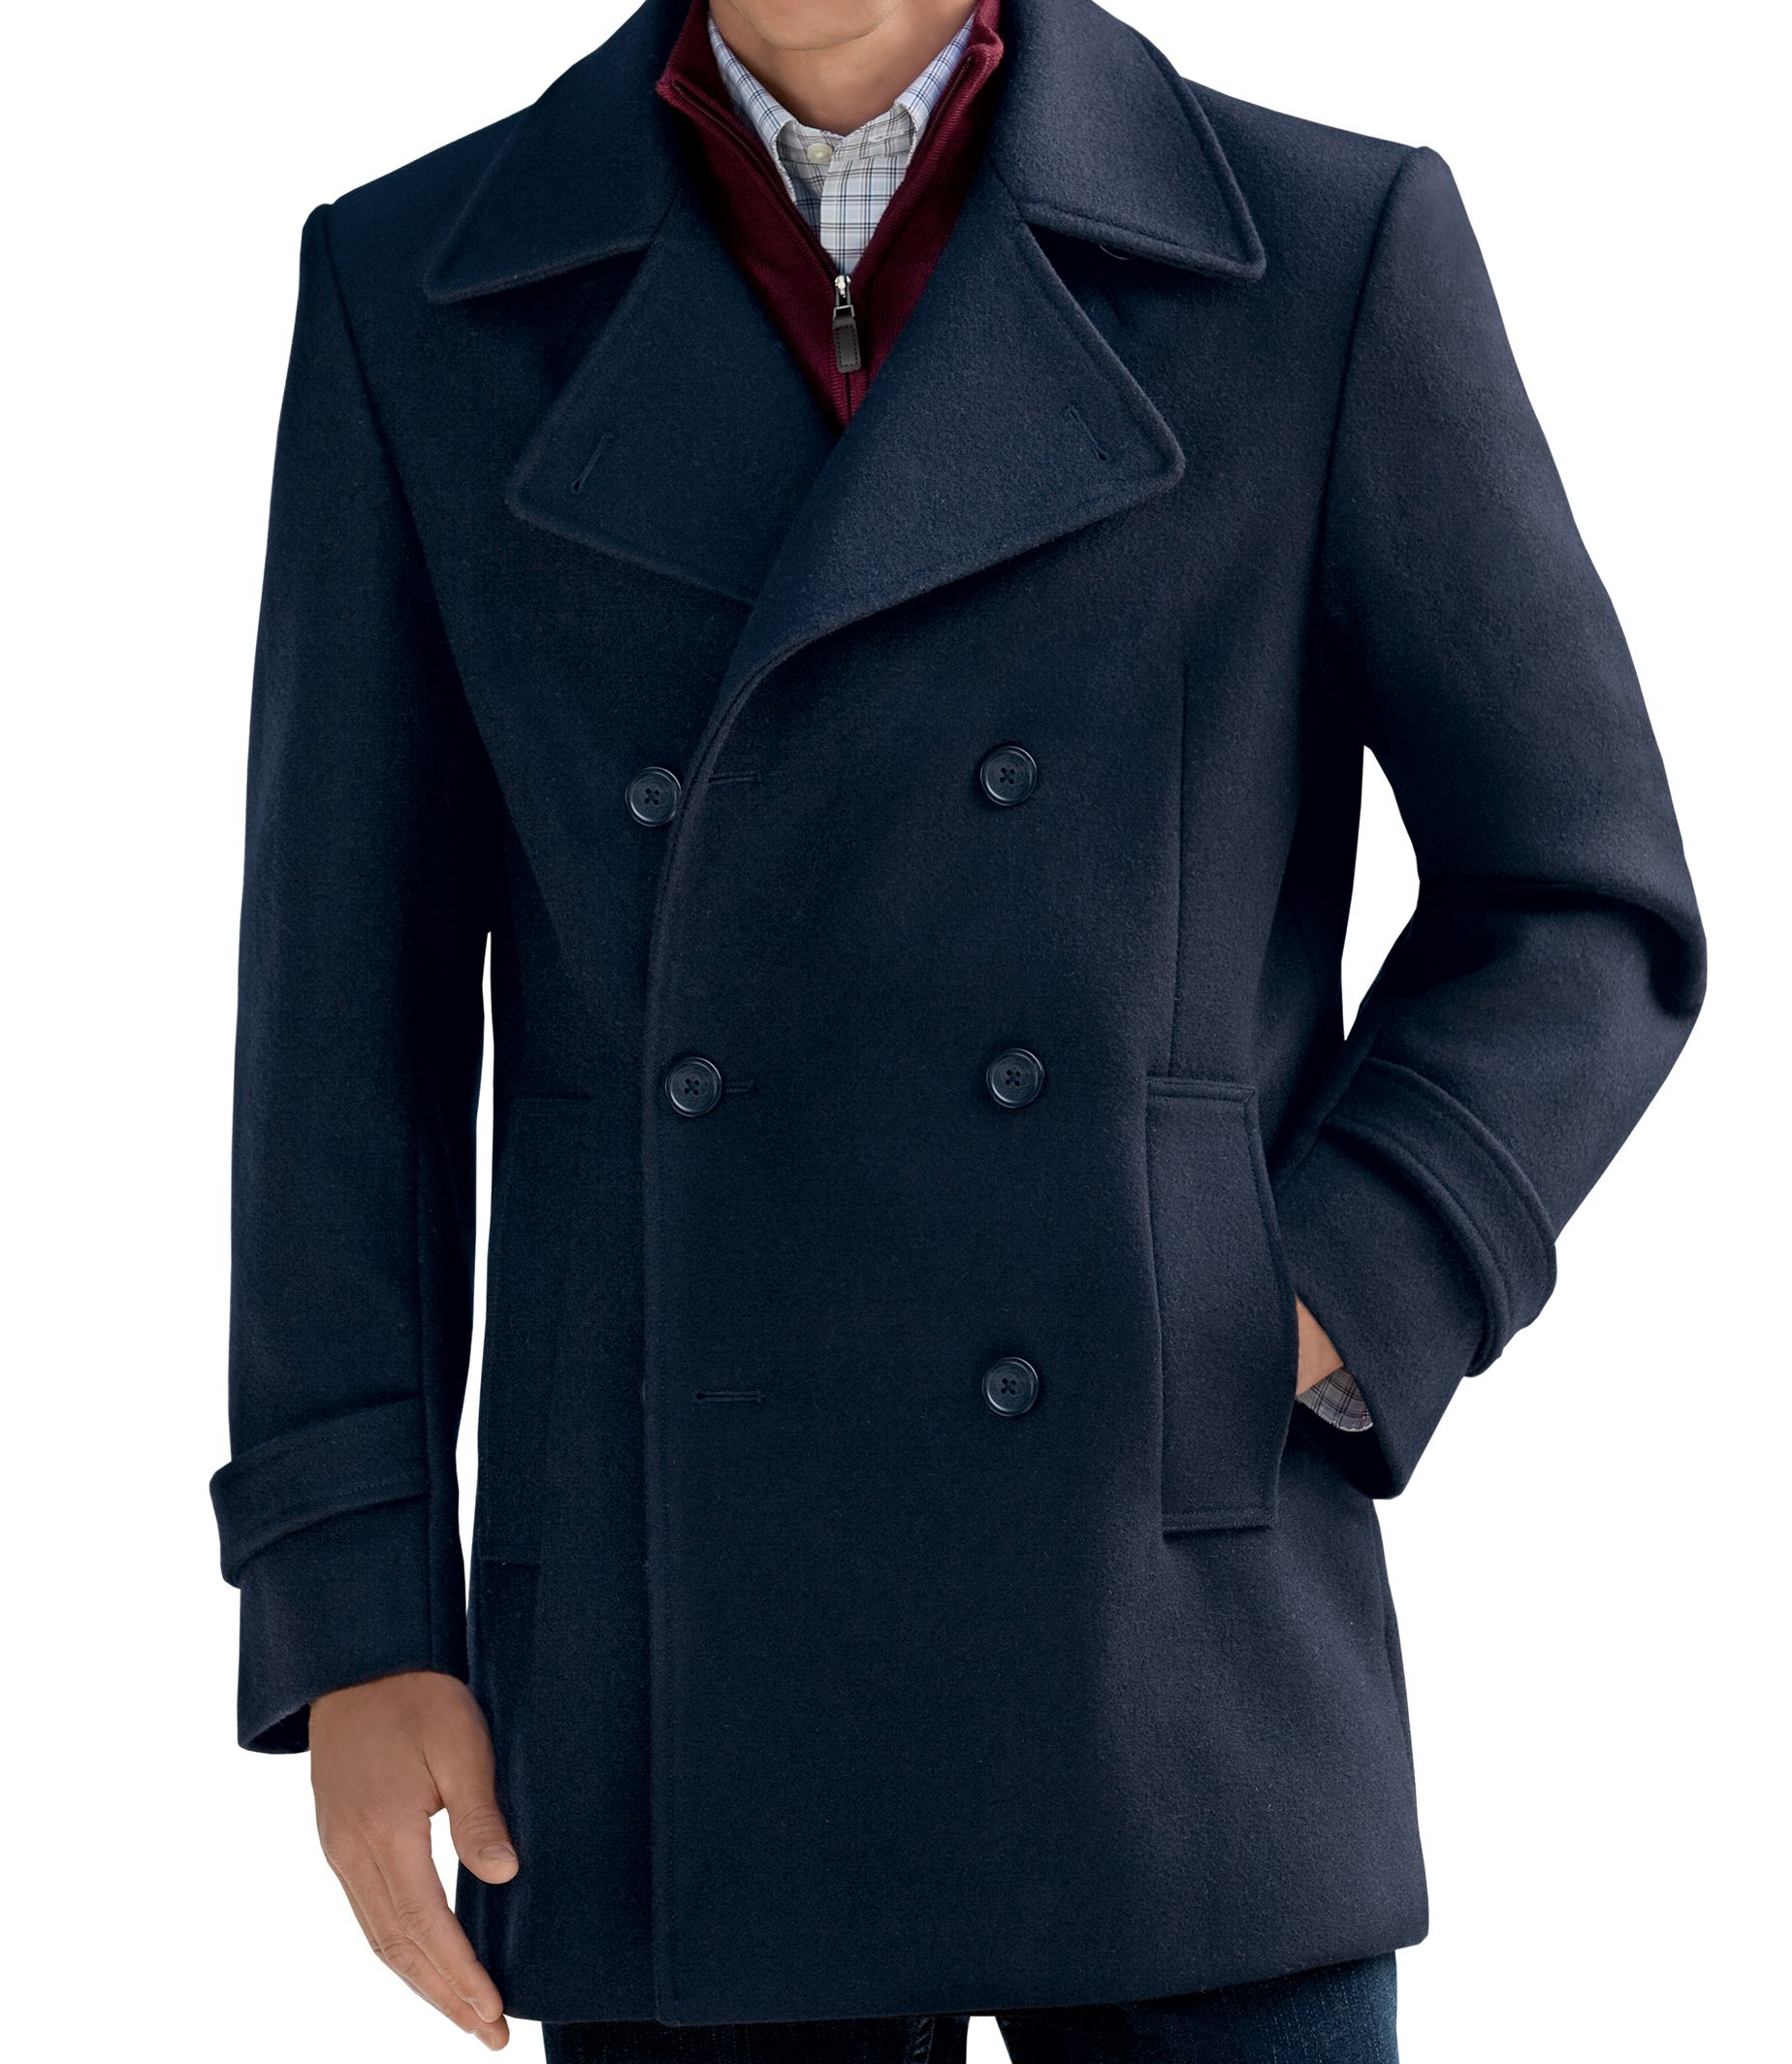 Men's Outerwear, Coats & Jackets | Men's Outerwear | JoS. A. Bank ...